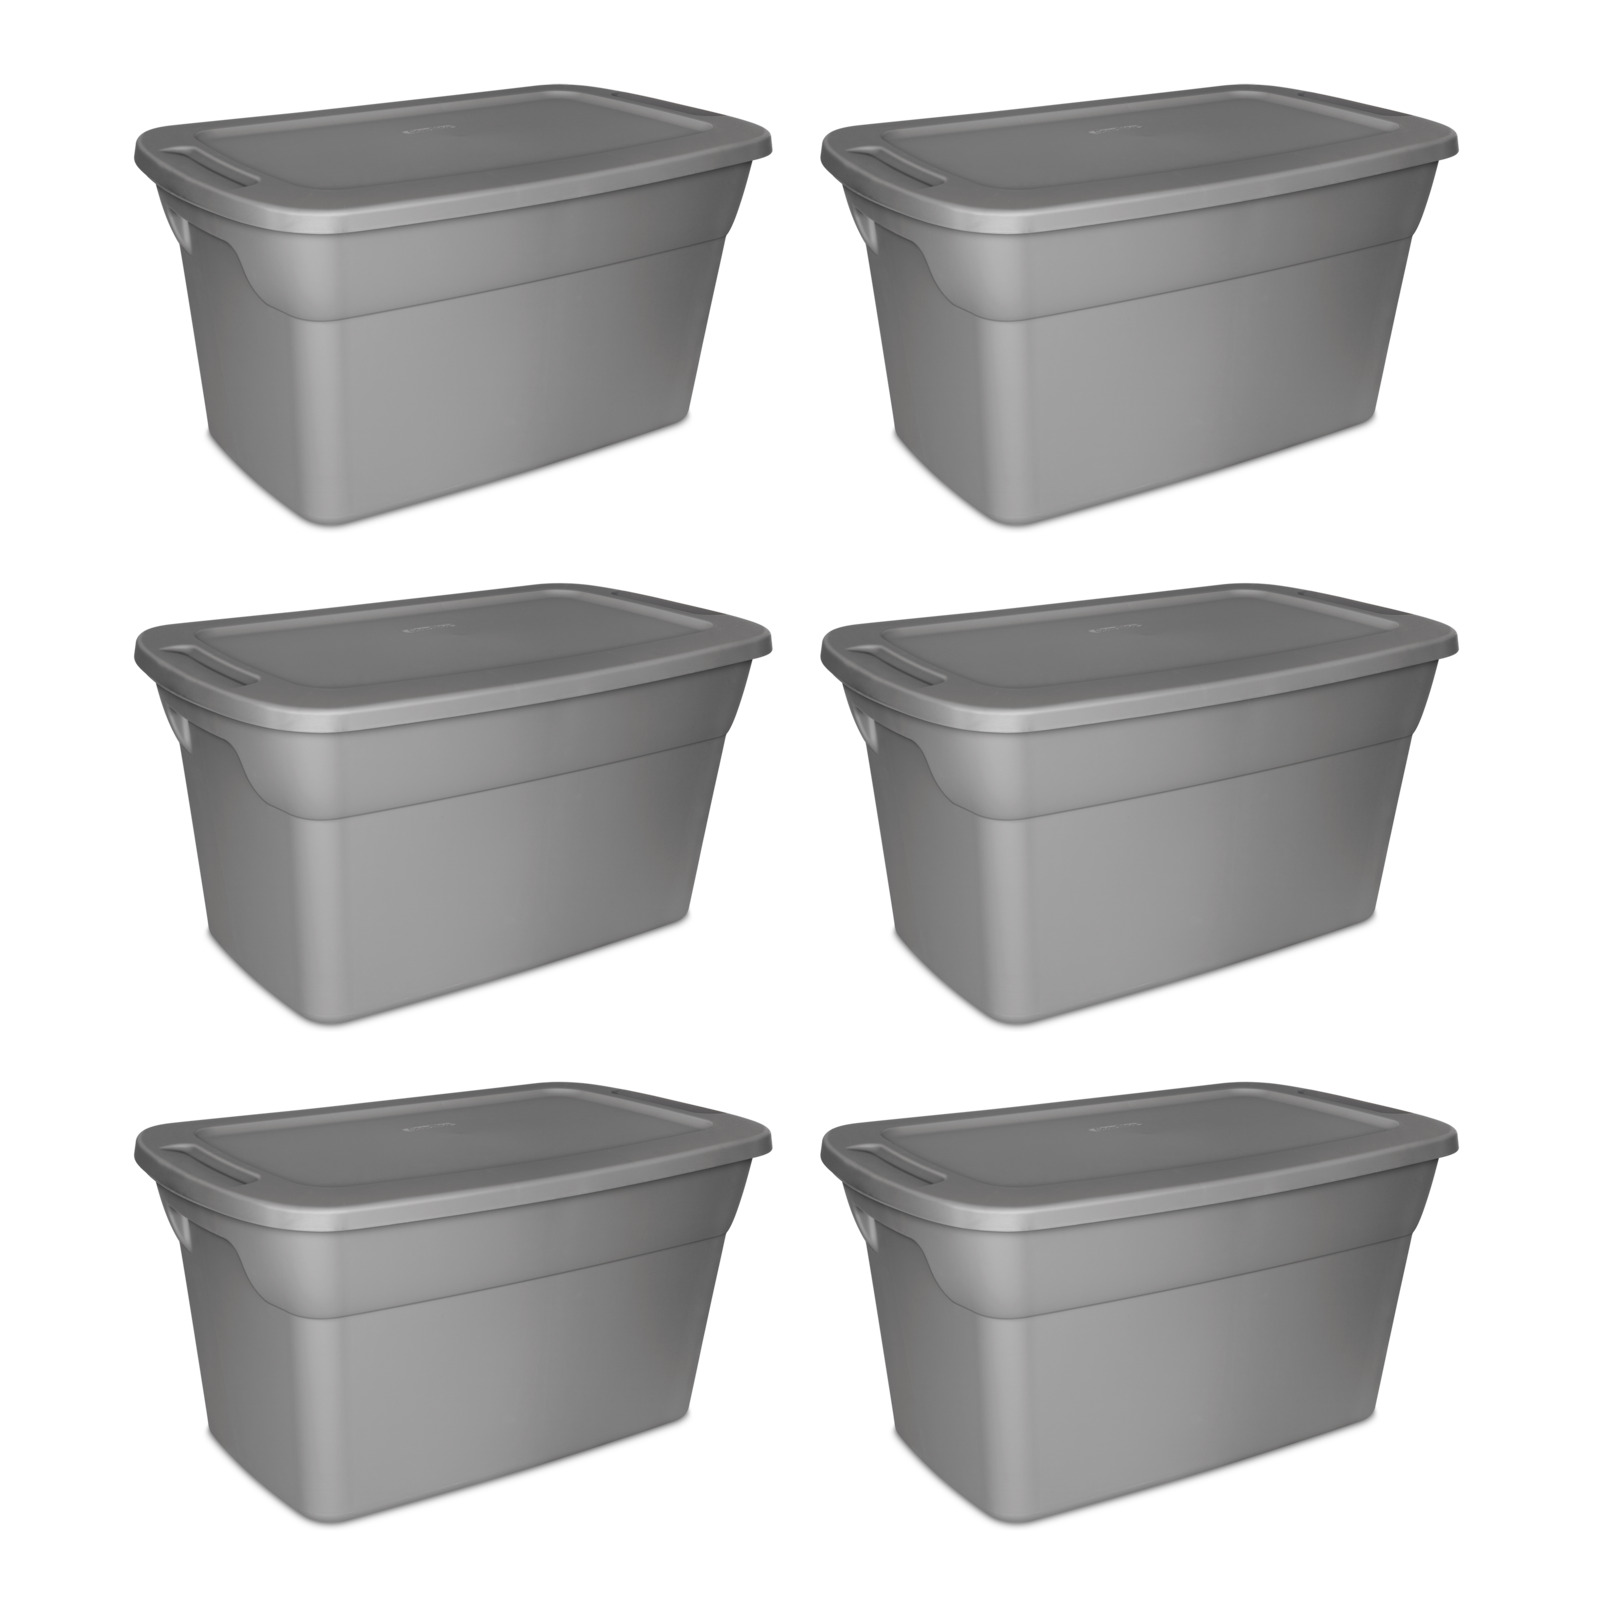 Storage Containers 30 Gallon Set Of 6 Bin Lids Garage Home Organizer Tote Box